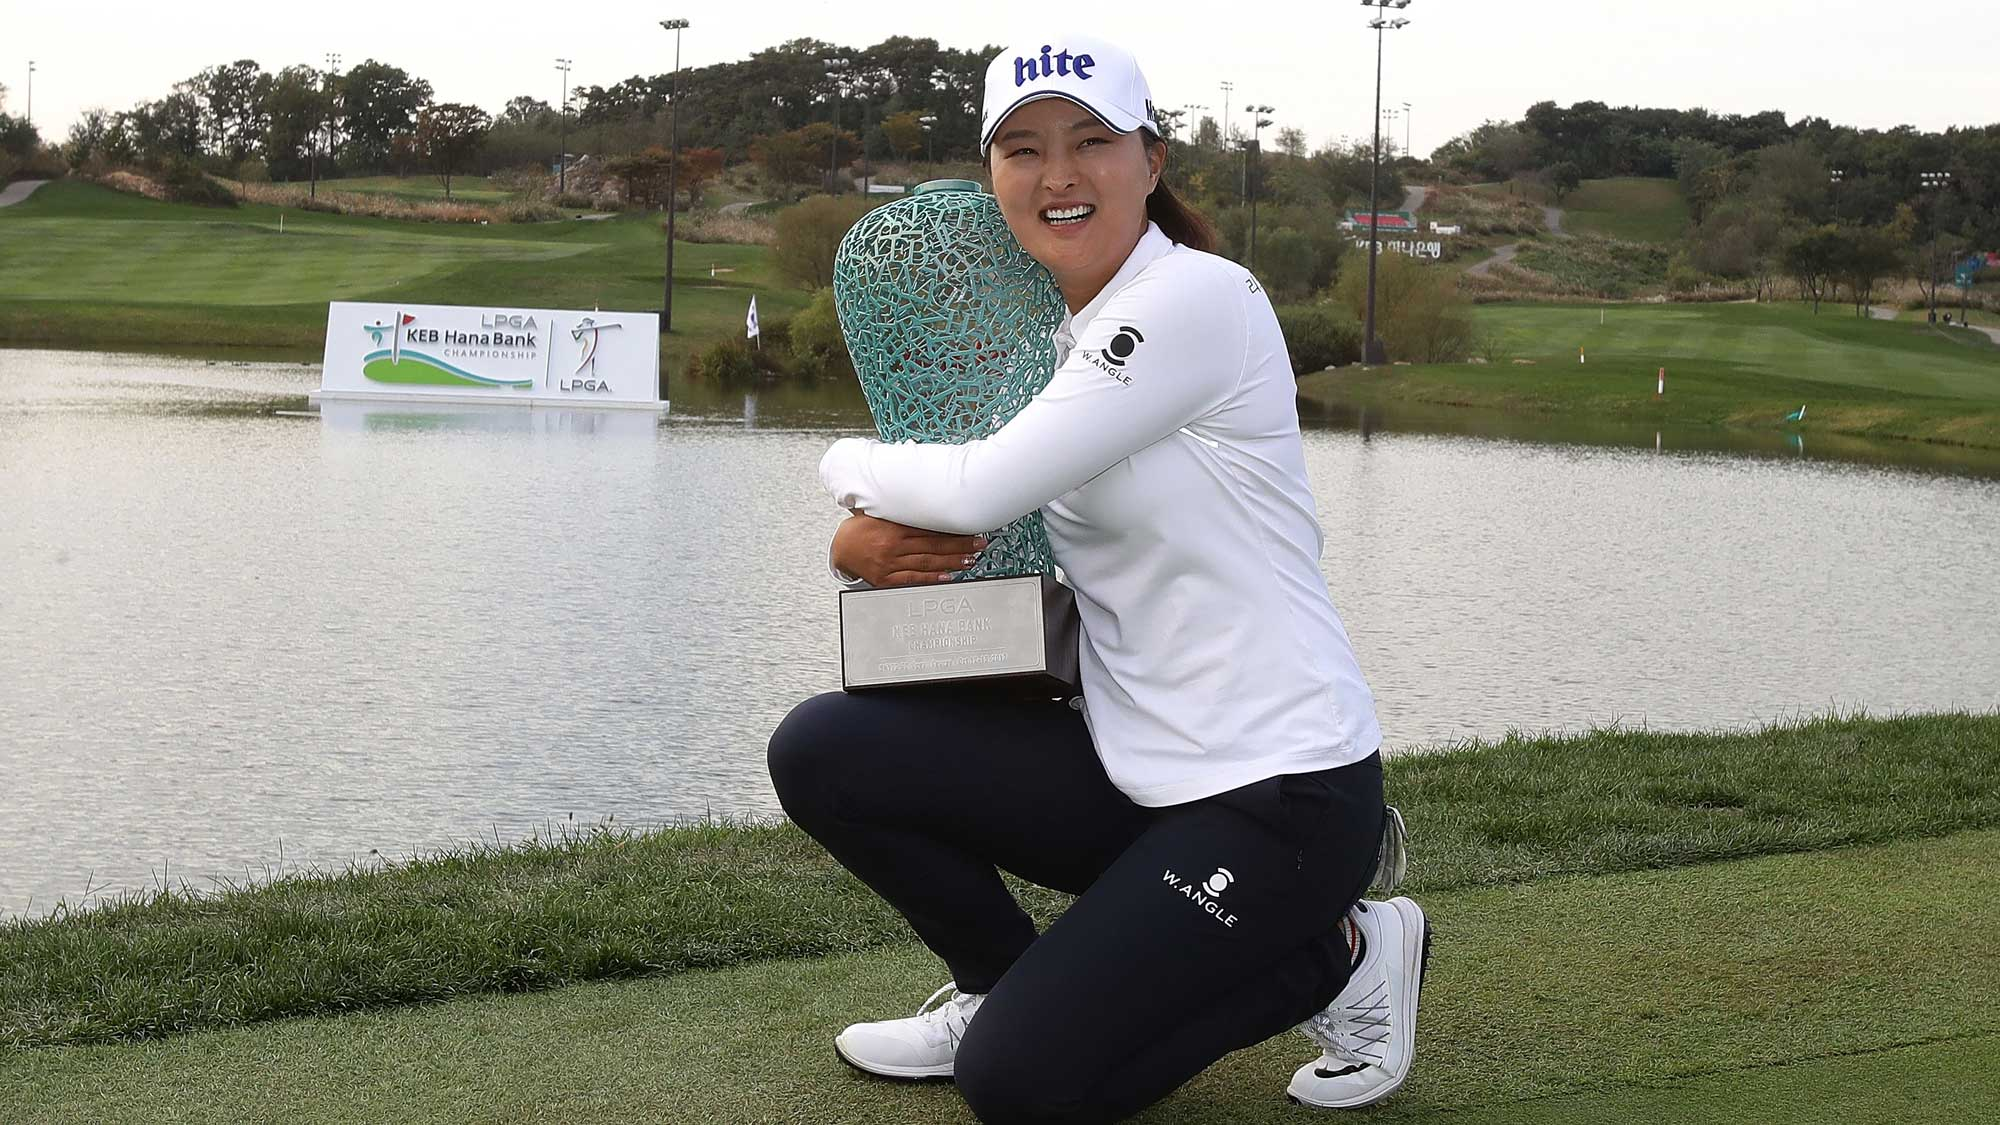 Jin Young Ko with KEB trophy